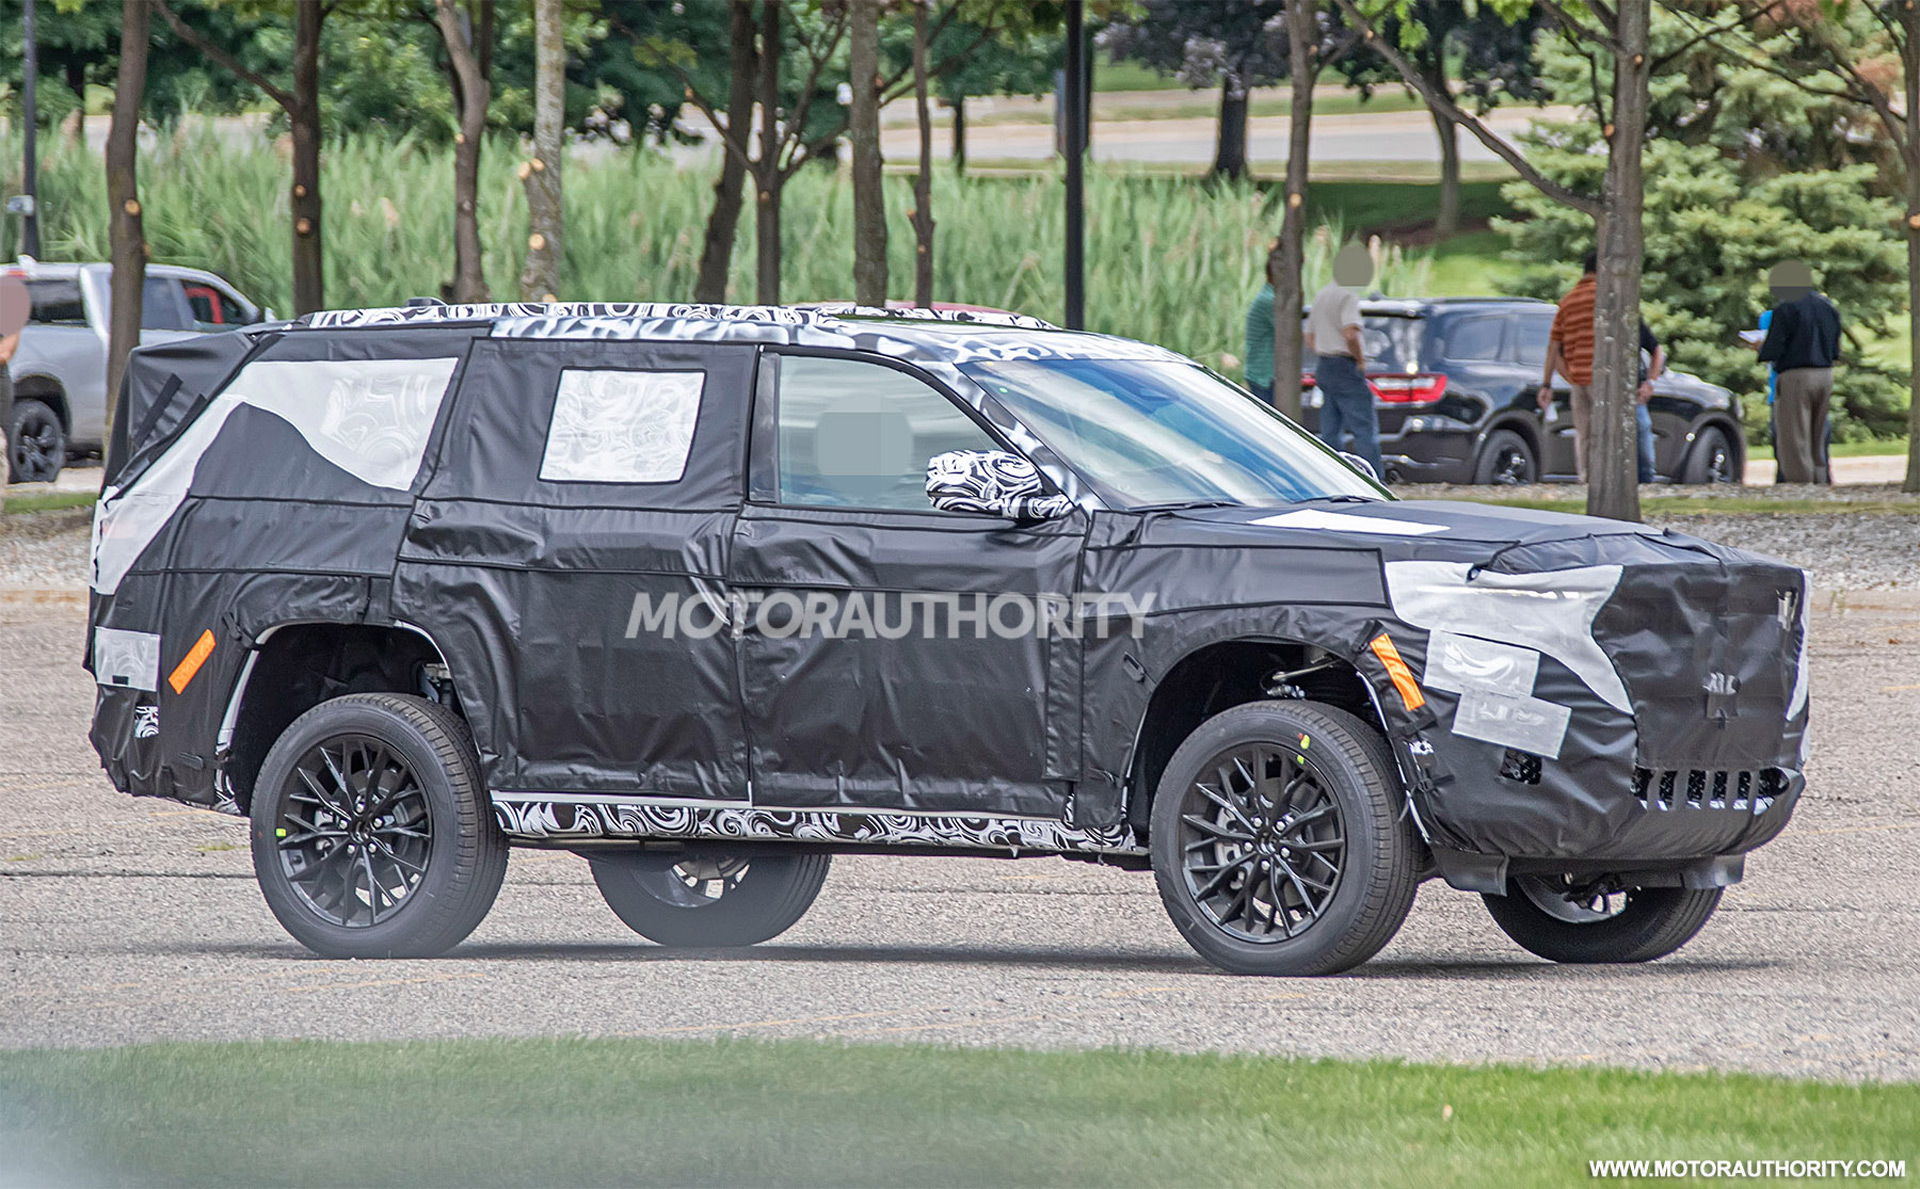 2021 - [Jeep] Grand Cherokee  - Page 2 2022-jeep-grand-cherokee-based-3-row-suv-spy-shots--photo-credit-s-baldauf-sb-medien_100754581_h